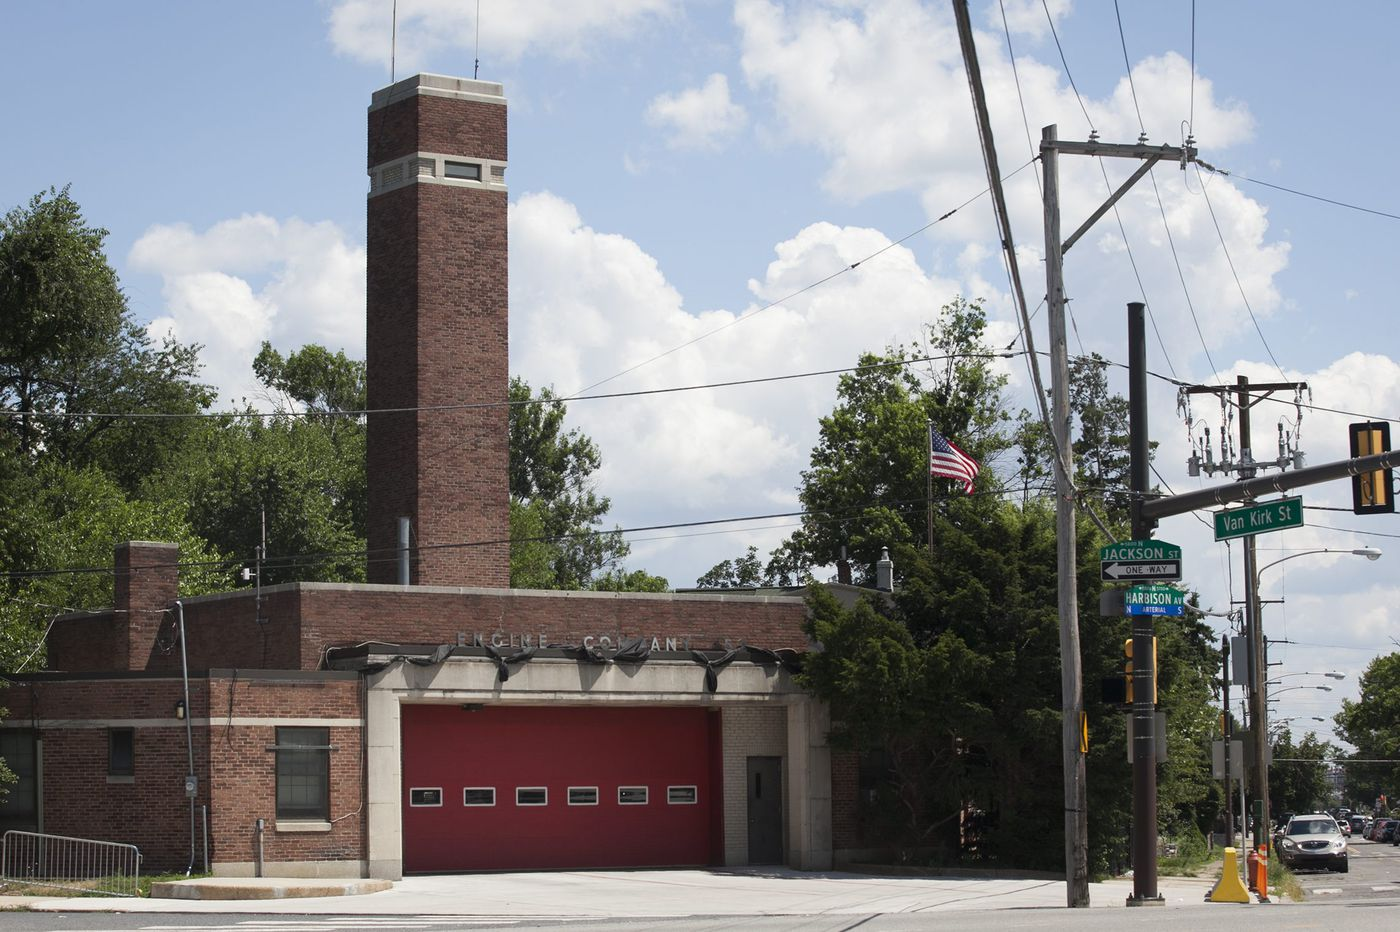 You're not seeing things. Philadelphia's identical firehouses are all over the city